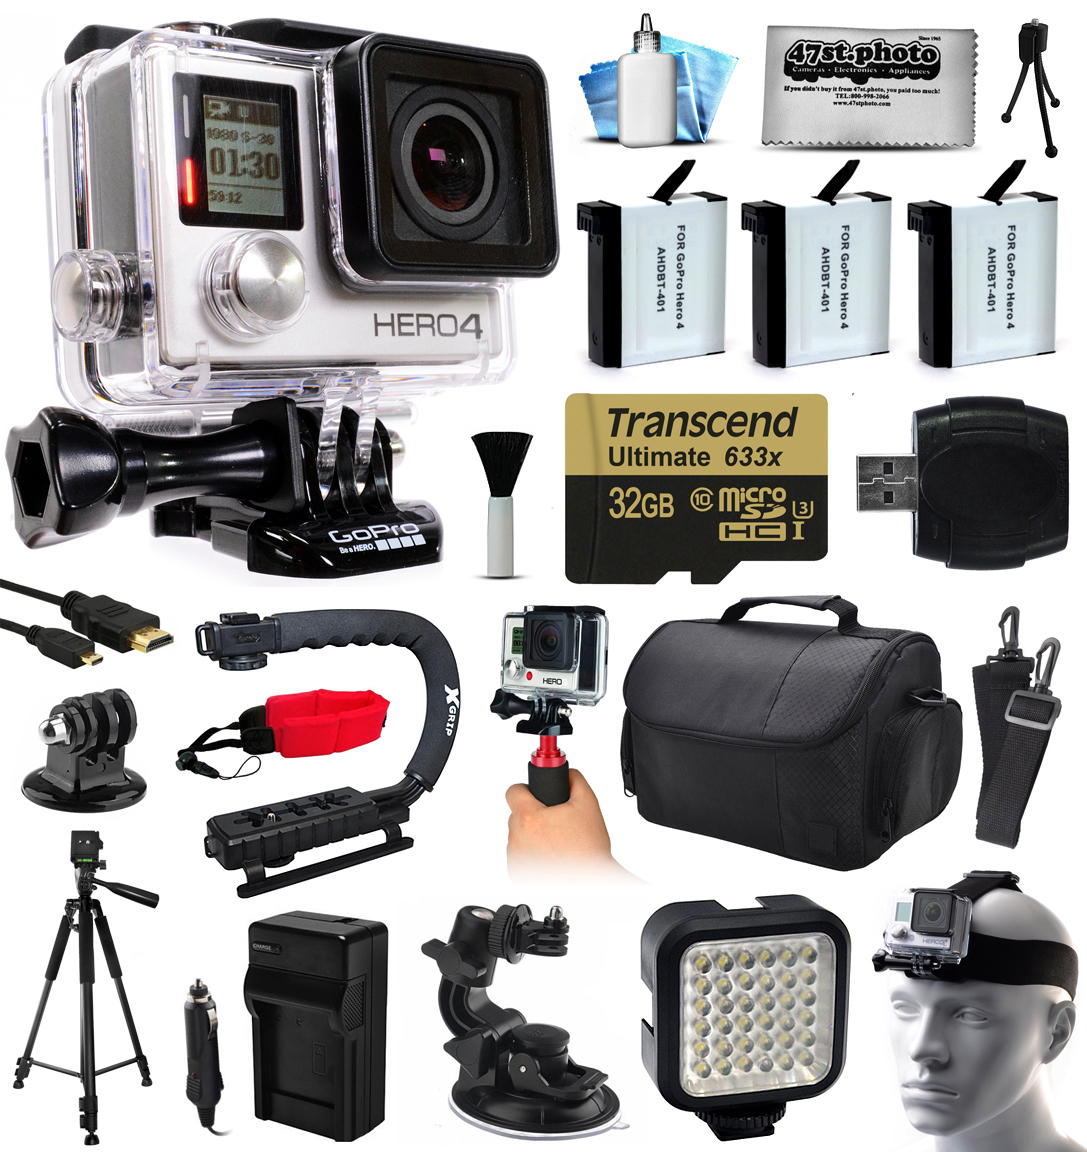 Buy GoPro Hero 4 HERO4 Black Edition 4K Action Camera Camcorder with 32GB MicroSD, 3x Battery, Charger, Large Case, Handle,... by GoPro